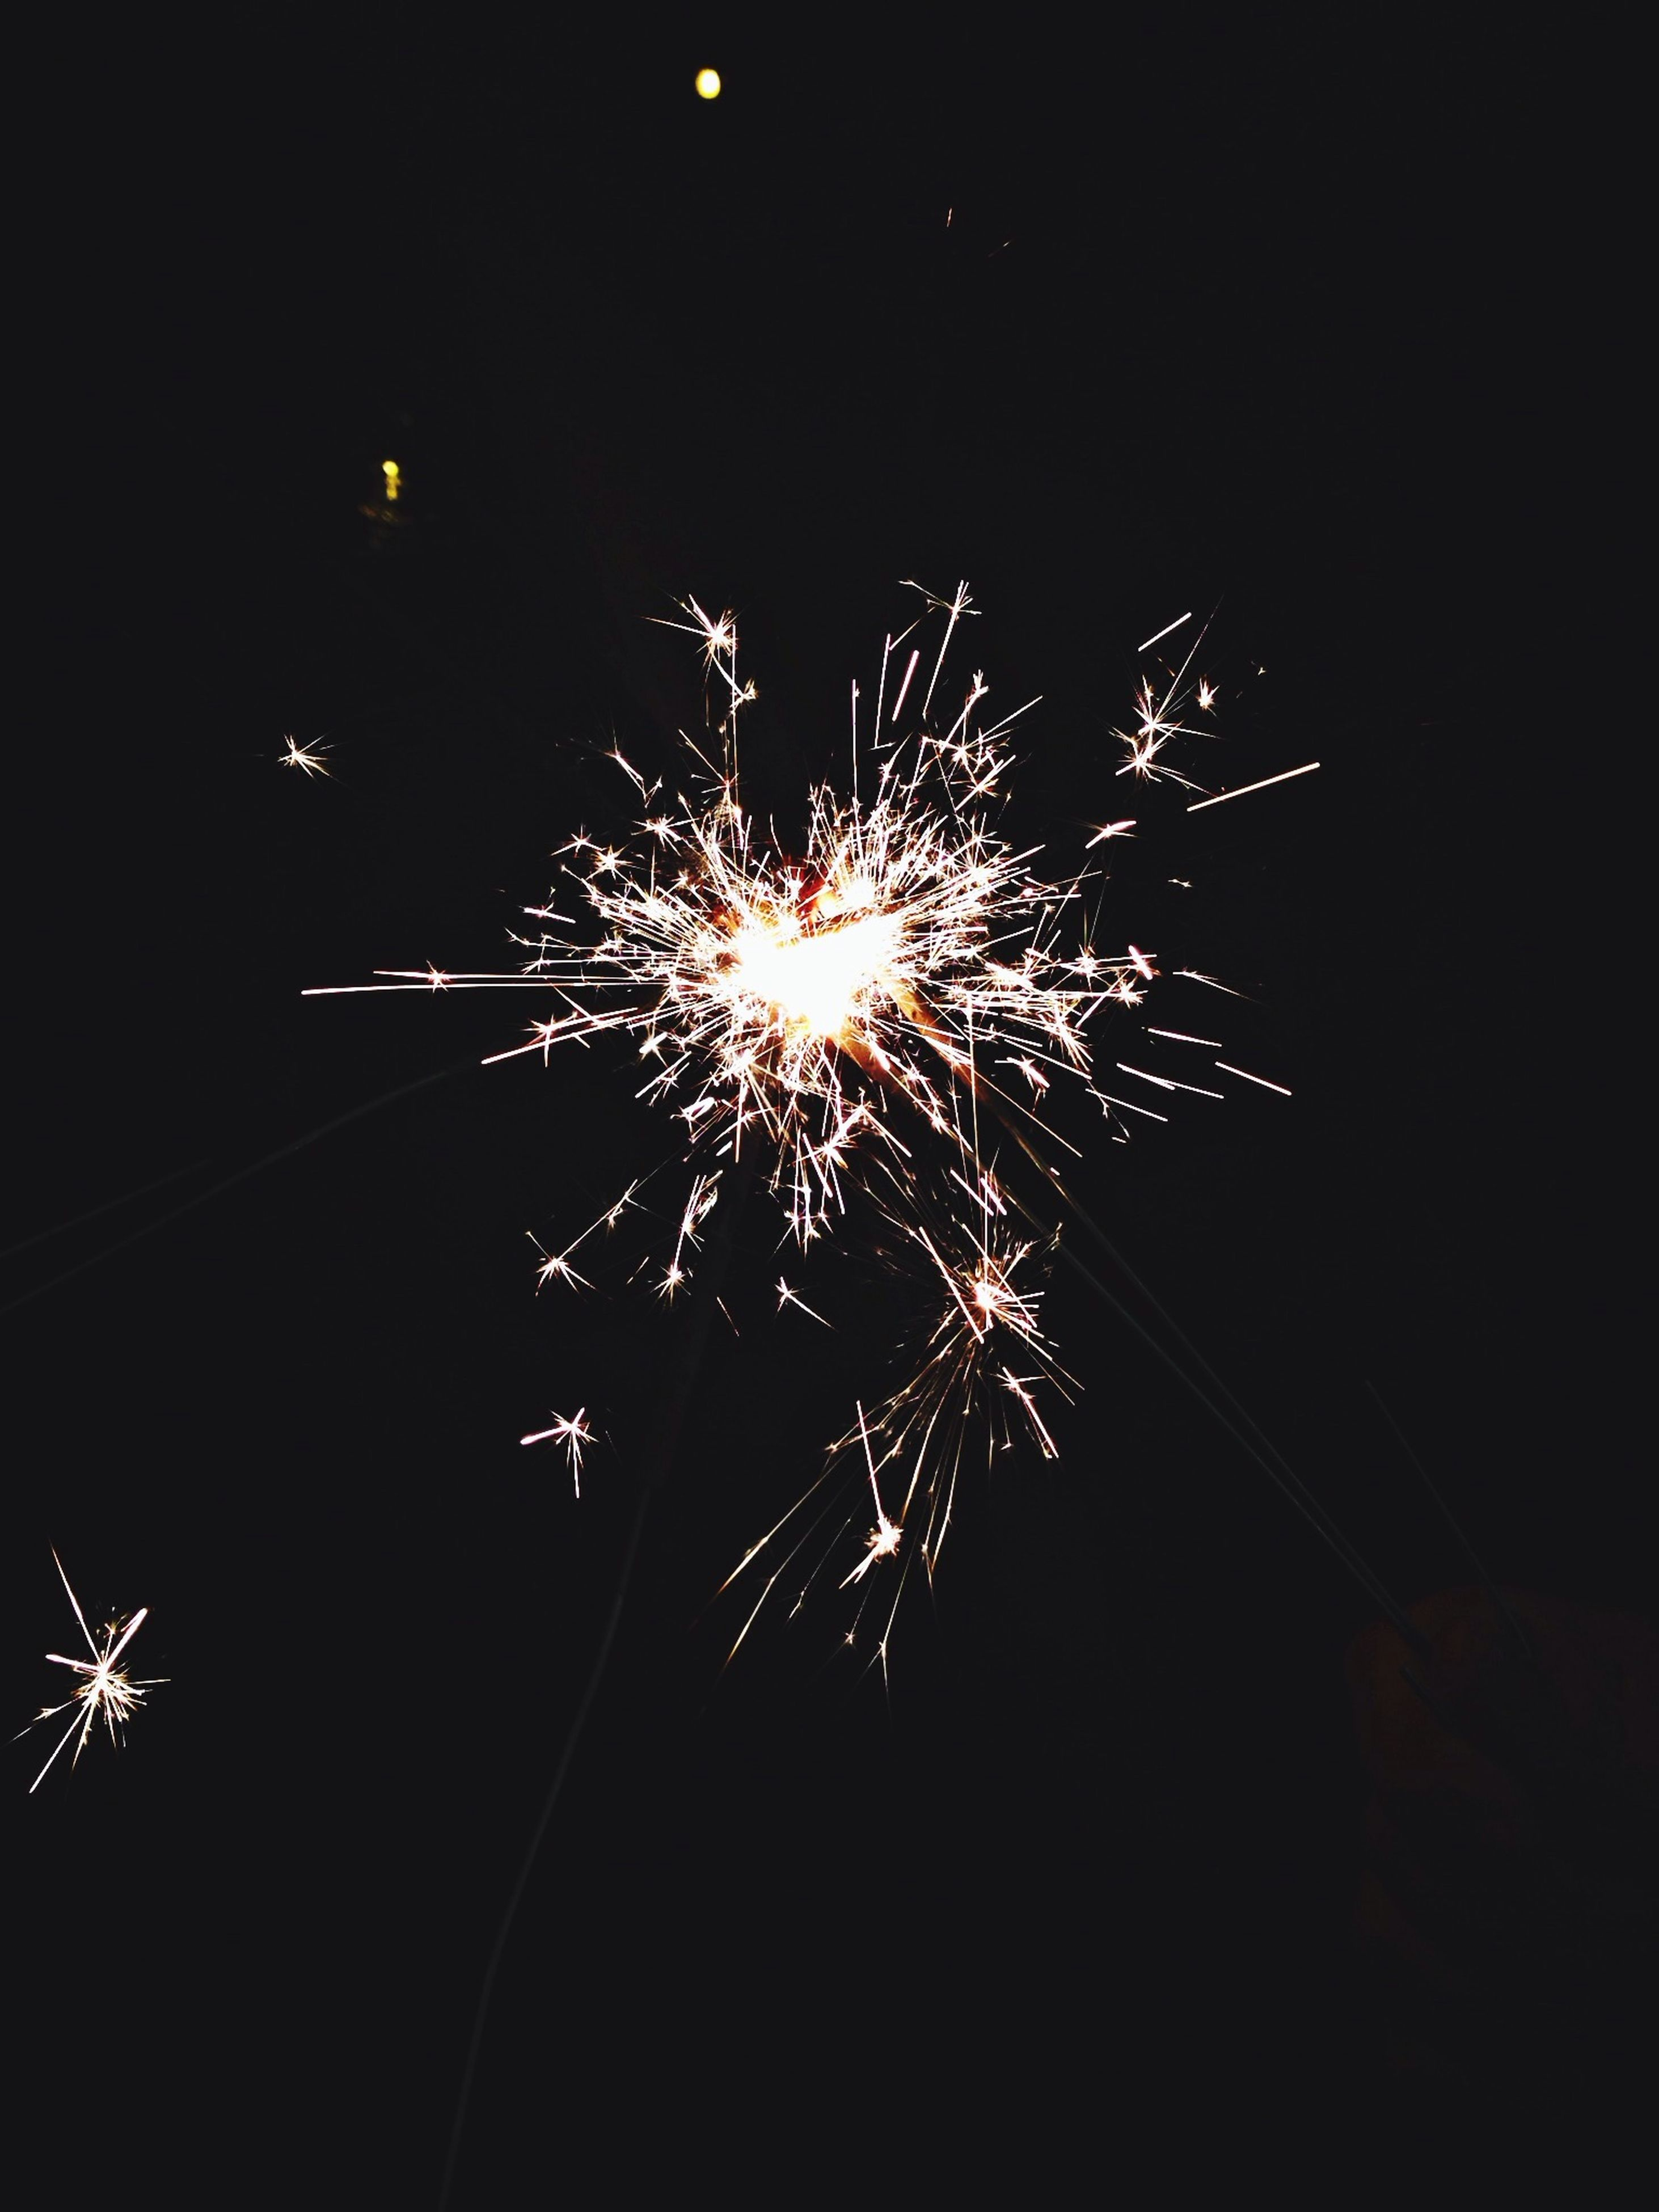 night, firework display, exploding, illuminated, celebration, firework - man made object, long exposure, arts culture and entertainment, low angle view, motion, sparks, glowing, event, firework, entertainment, blurred motion, sky, fire - natural phenomenon, celebration event, outdoors